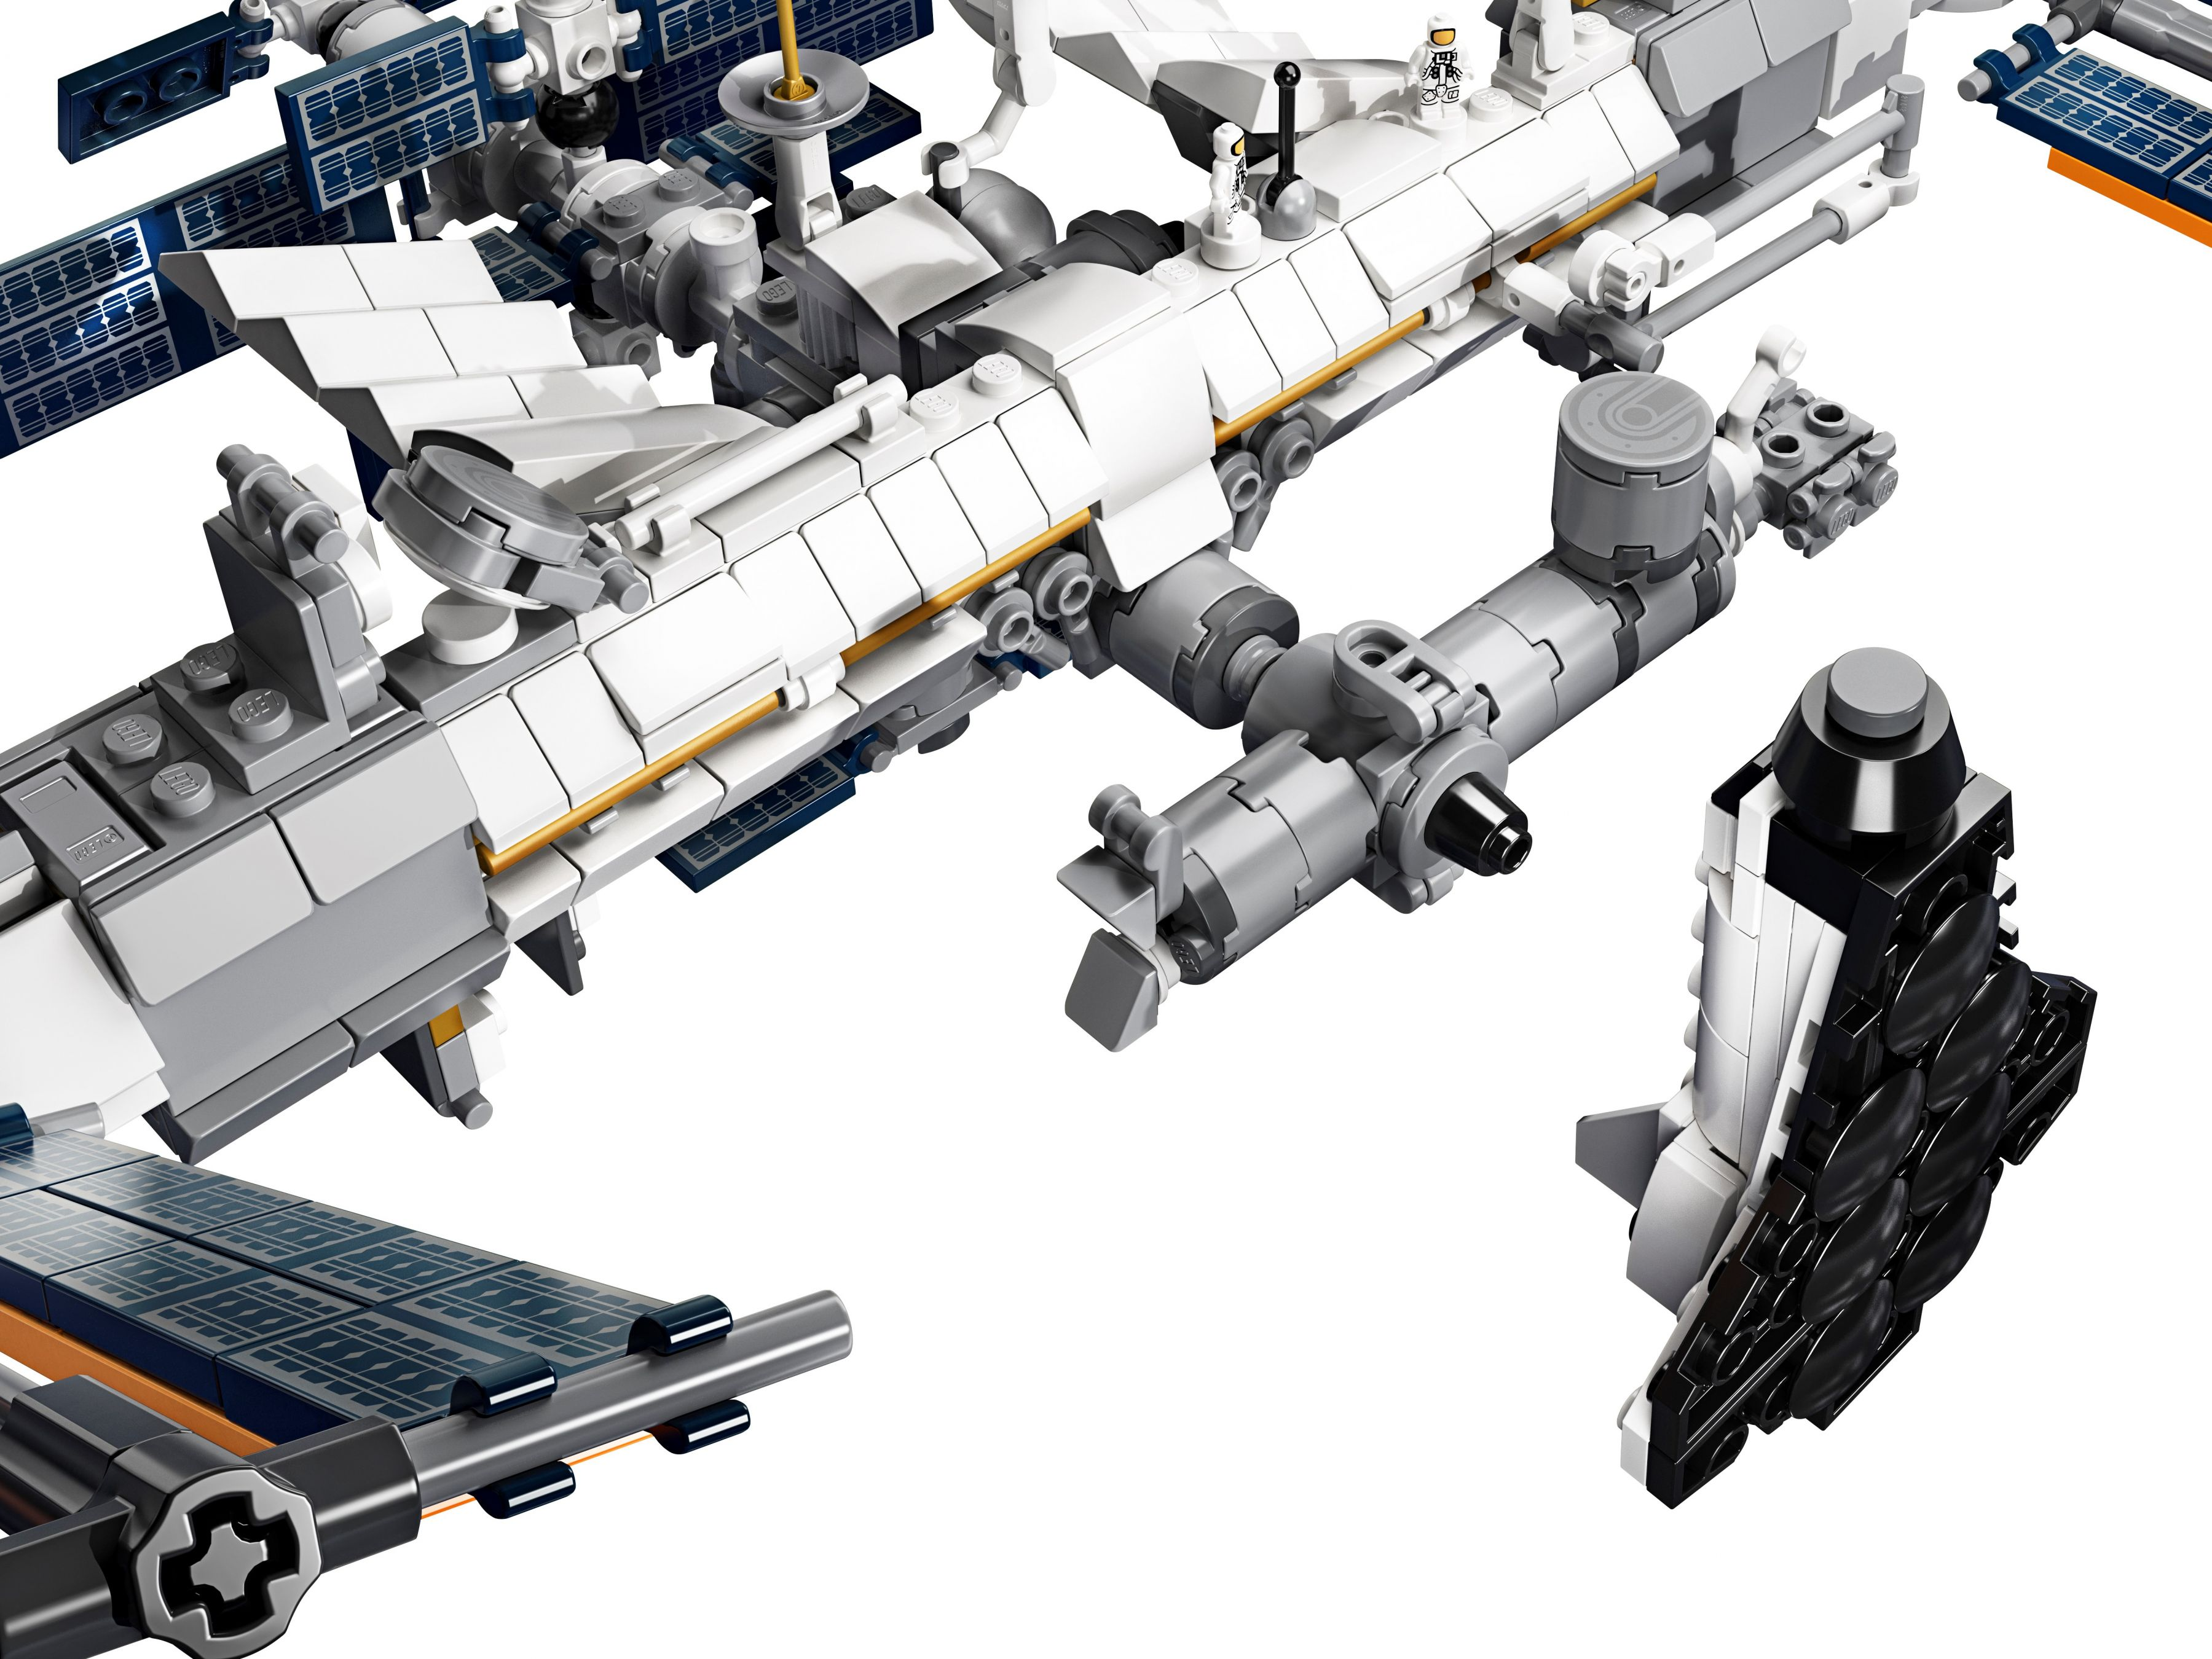 LEGO Ideas 21321 Internationale Raumstation LEGO_21321_alt4.jpg